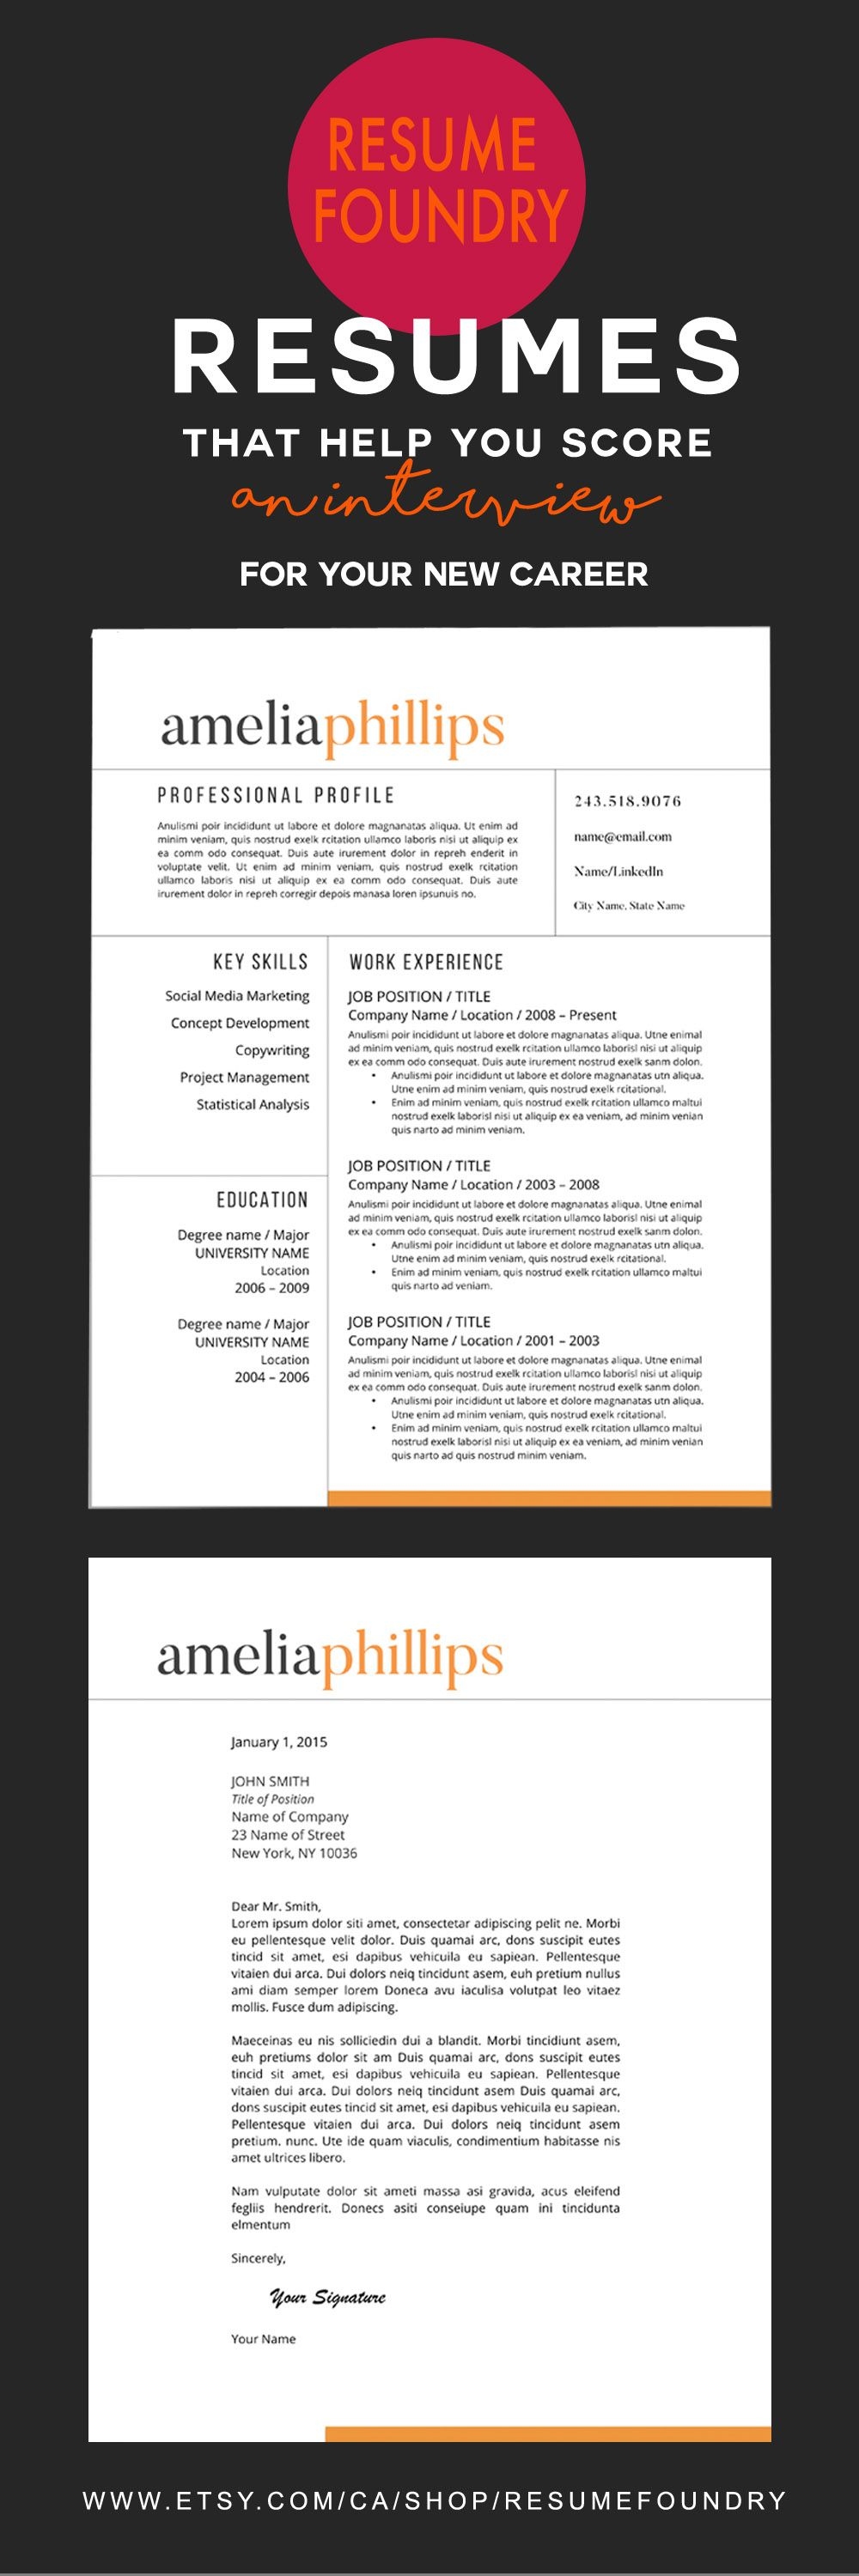 Most professional font for resume